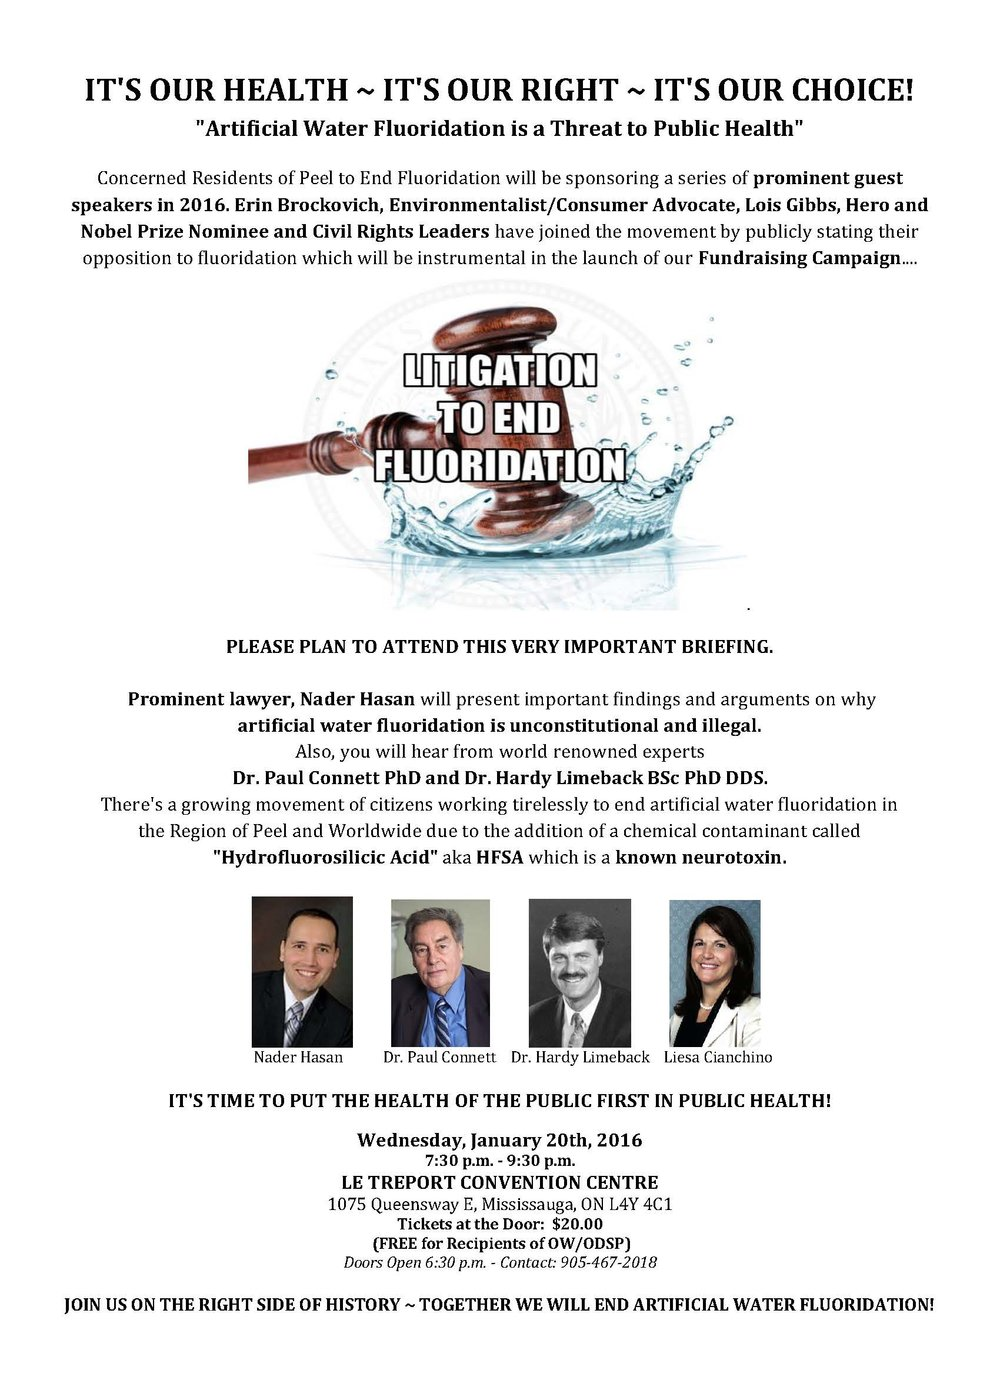 Litigation to End Fluoridation - January 20, 2016